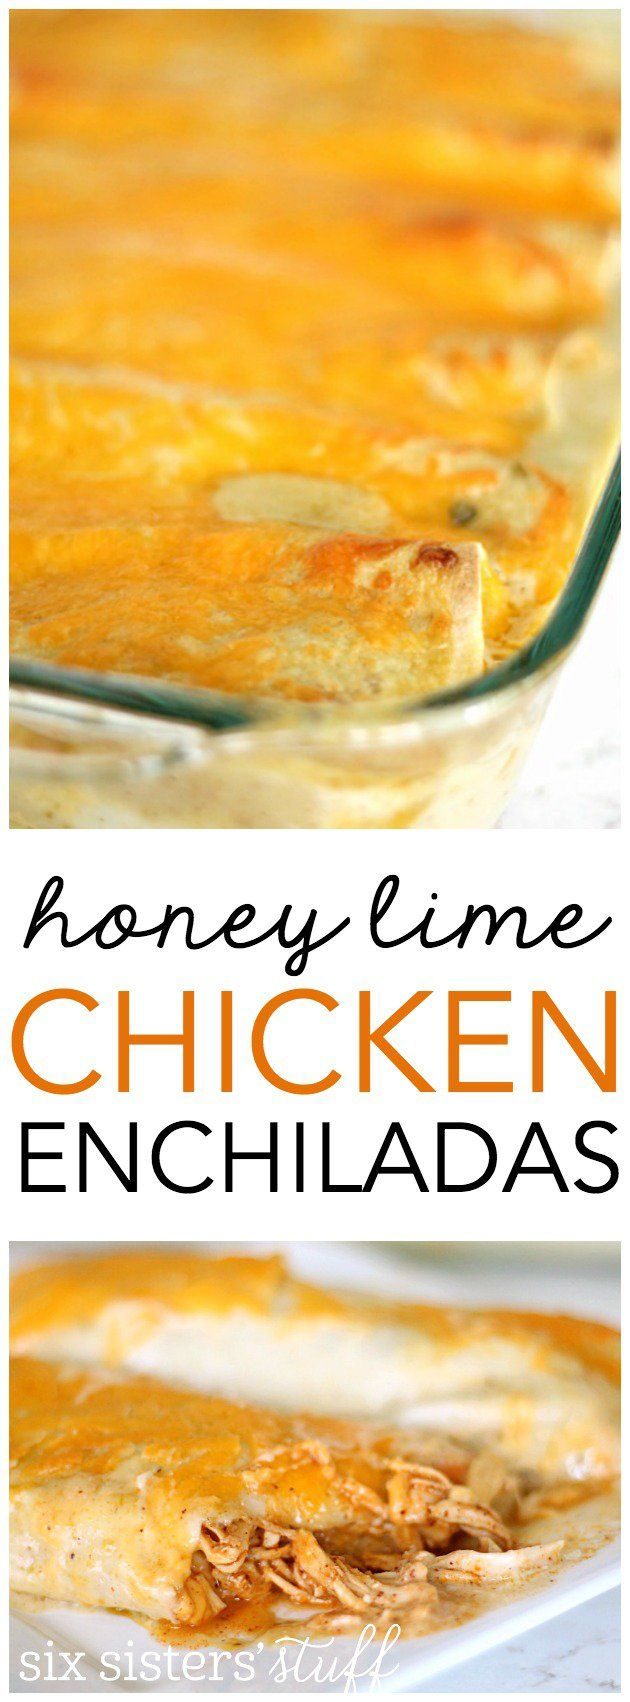 Honey Lime Chicken Enchiladas from SixSistersStuff.com